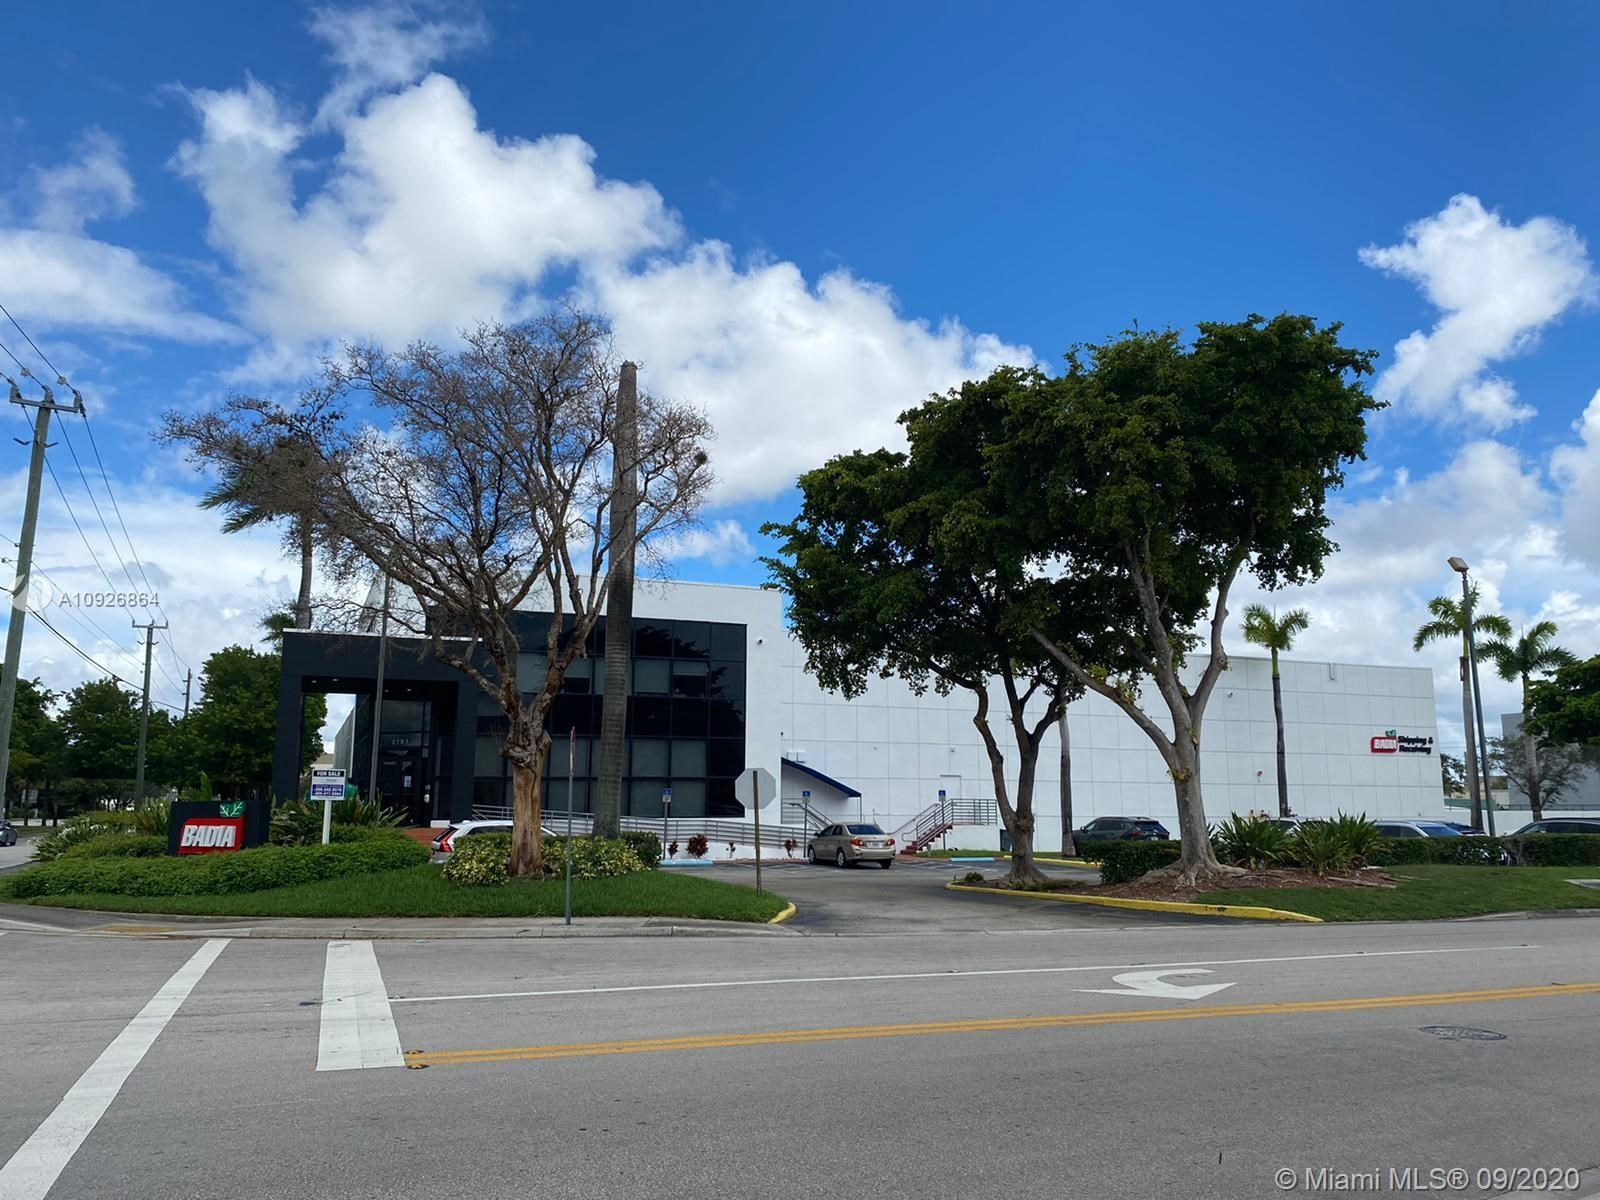 2101 NW 82nd Ave, Doral, FL 33122